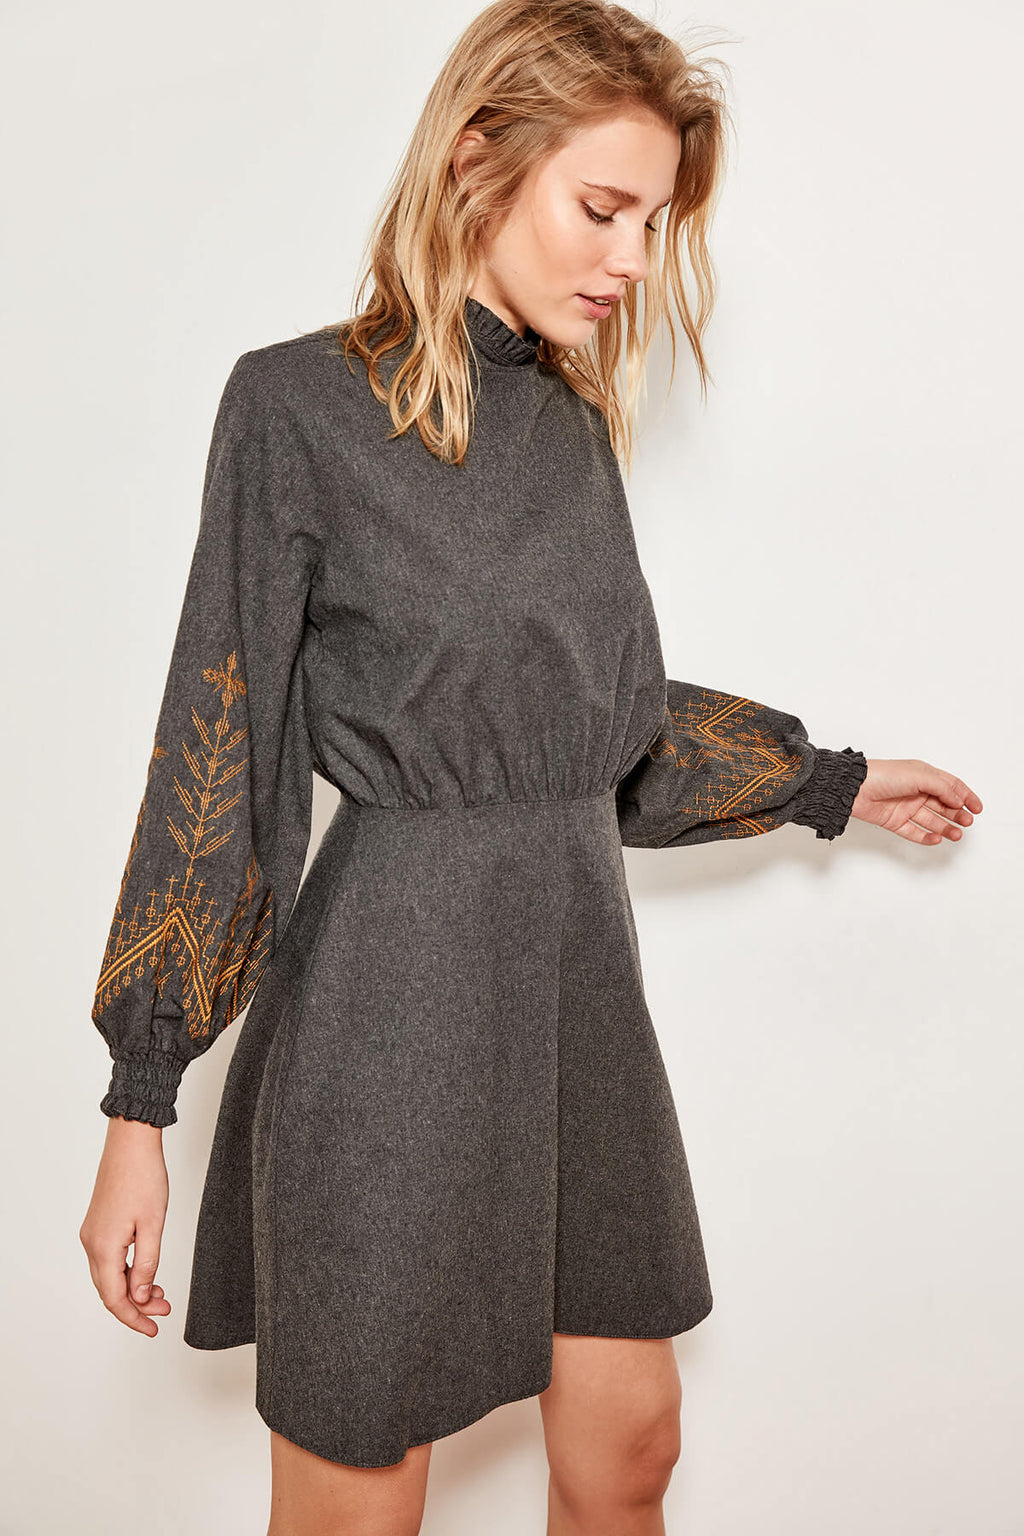 Advanced Embroidery Anthracite Dress